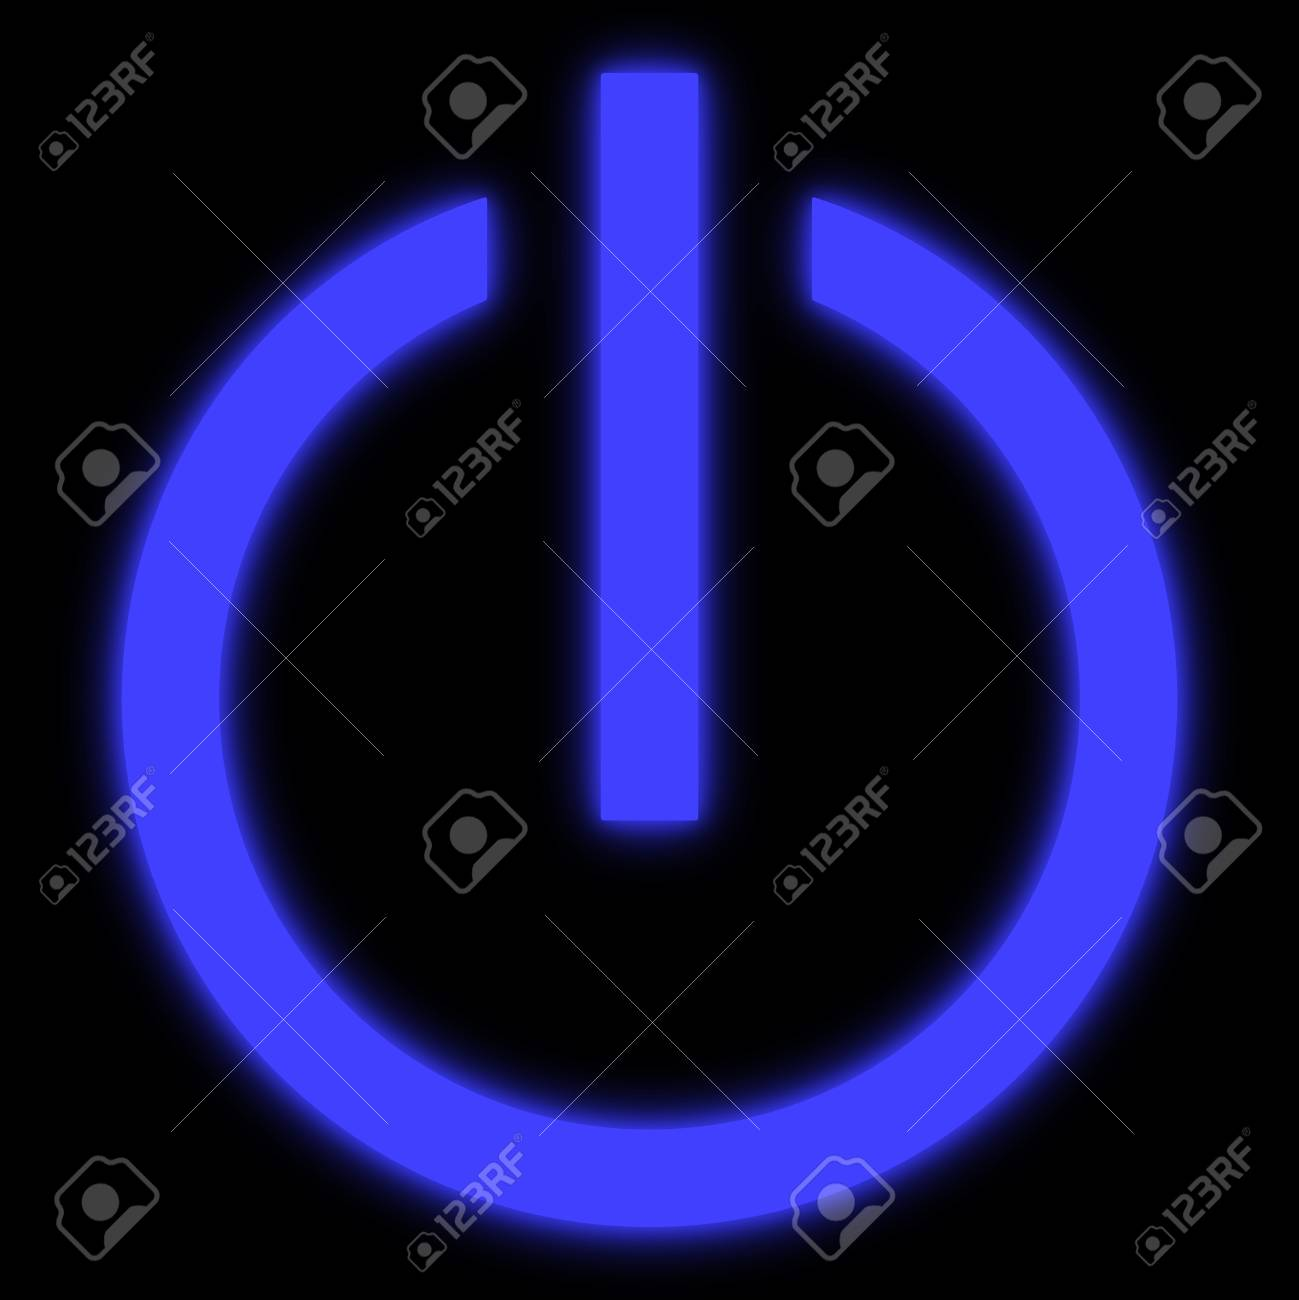 Symbol of an on off switch of electrical equipment stock photo symbol of an on off switch of electrical equipment stock photo 66012870 buycottarizona Choice Image